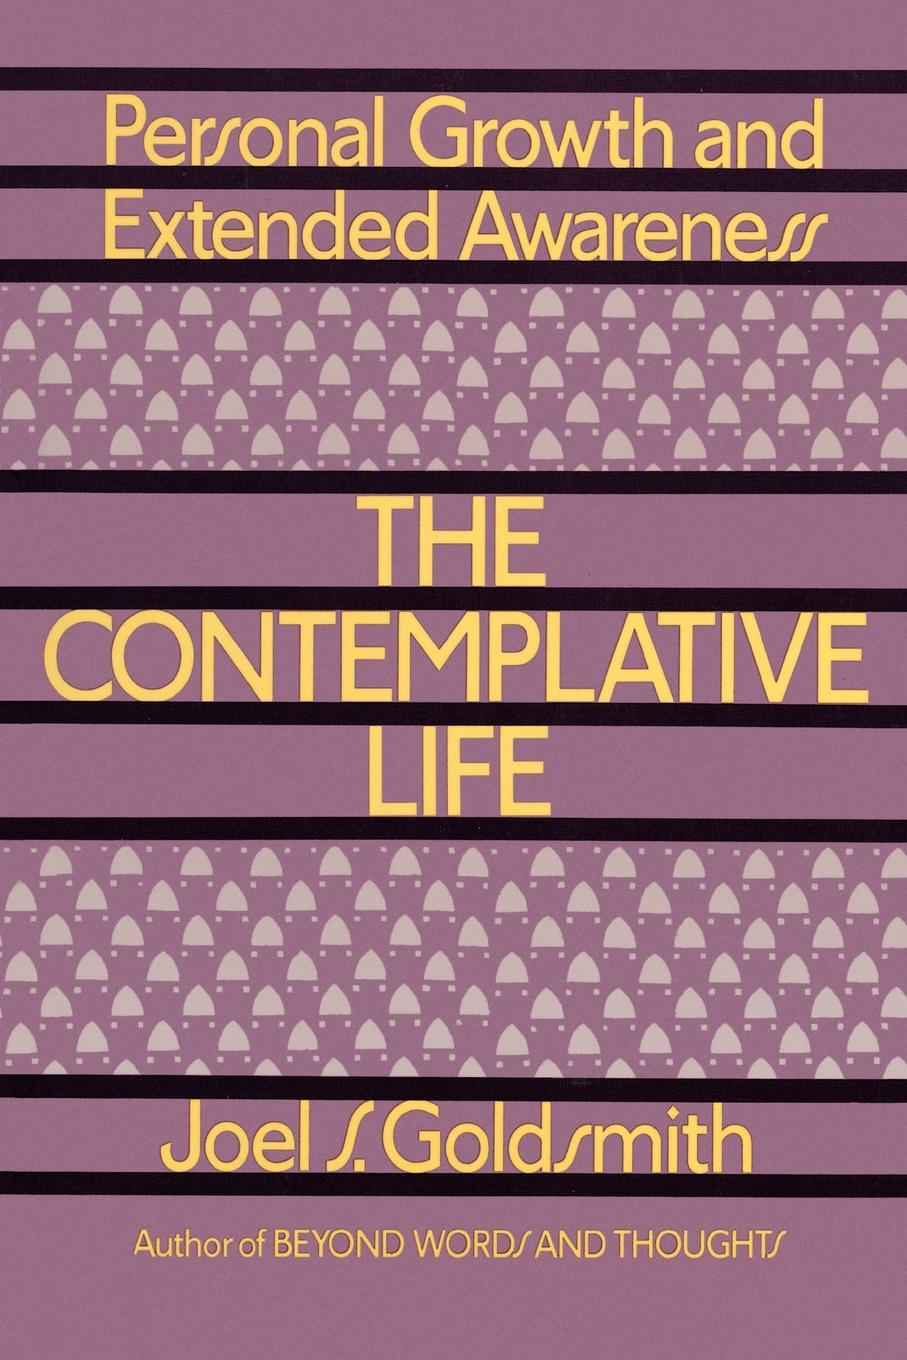 Joel S. Goldsmith The Contemplative Life will irons the possibilities of oneness doorways to life s deeper meaning wonder and joy